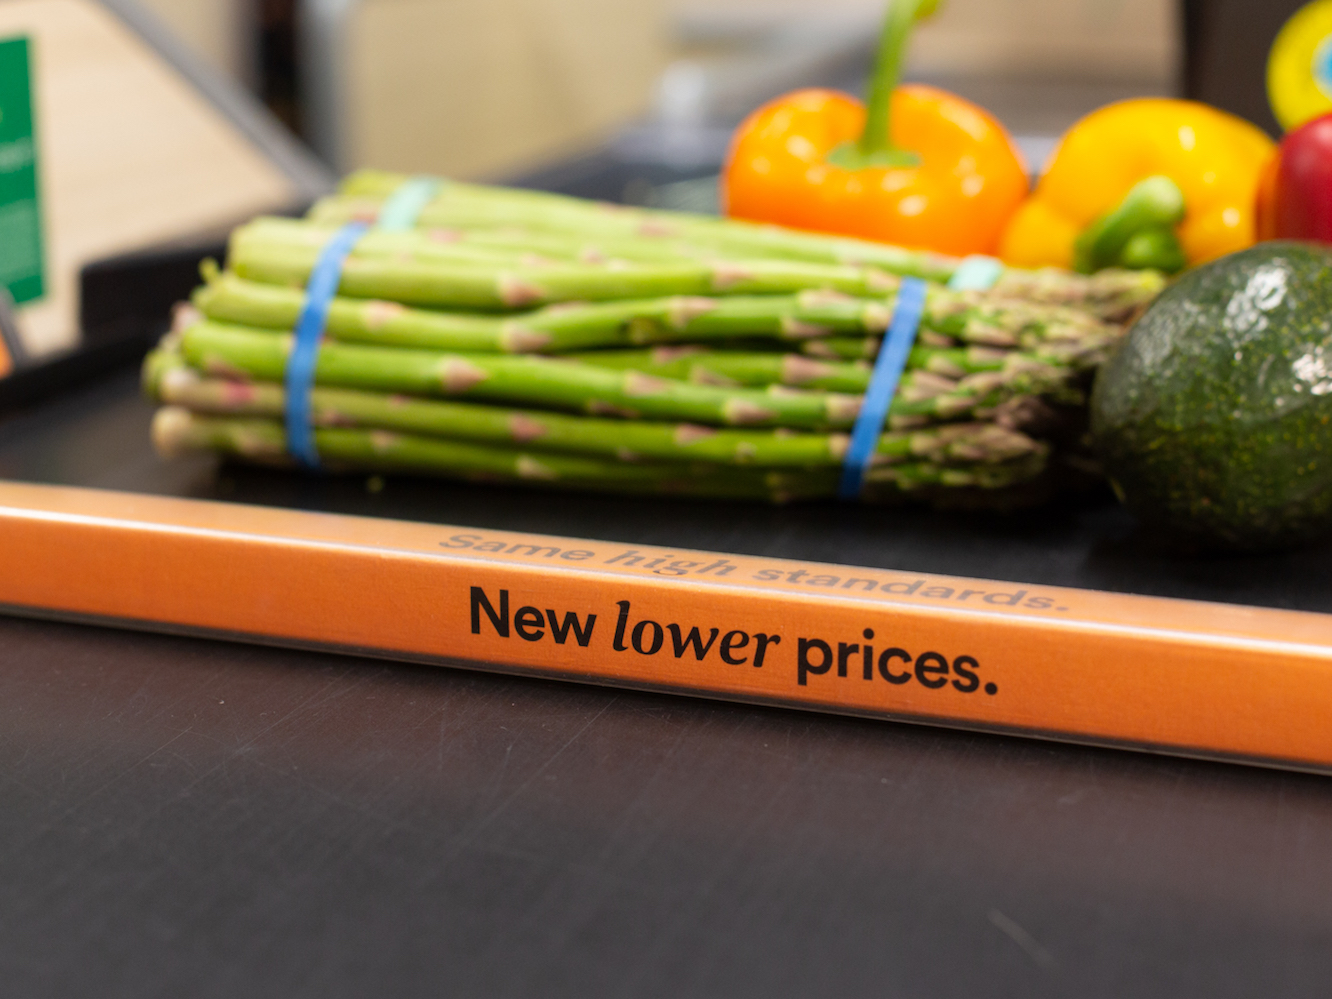 whole-foods-lower-prices-FT-BLOG0319.jpg